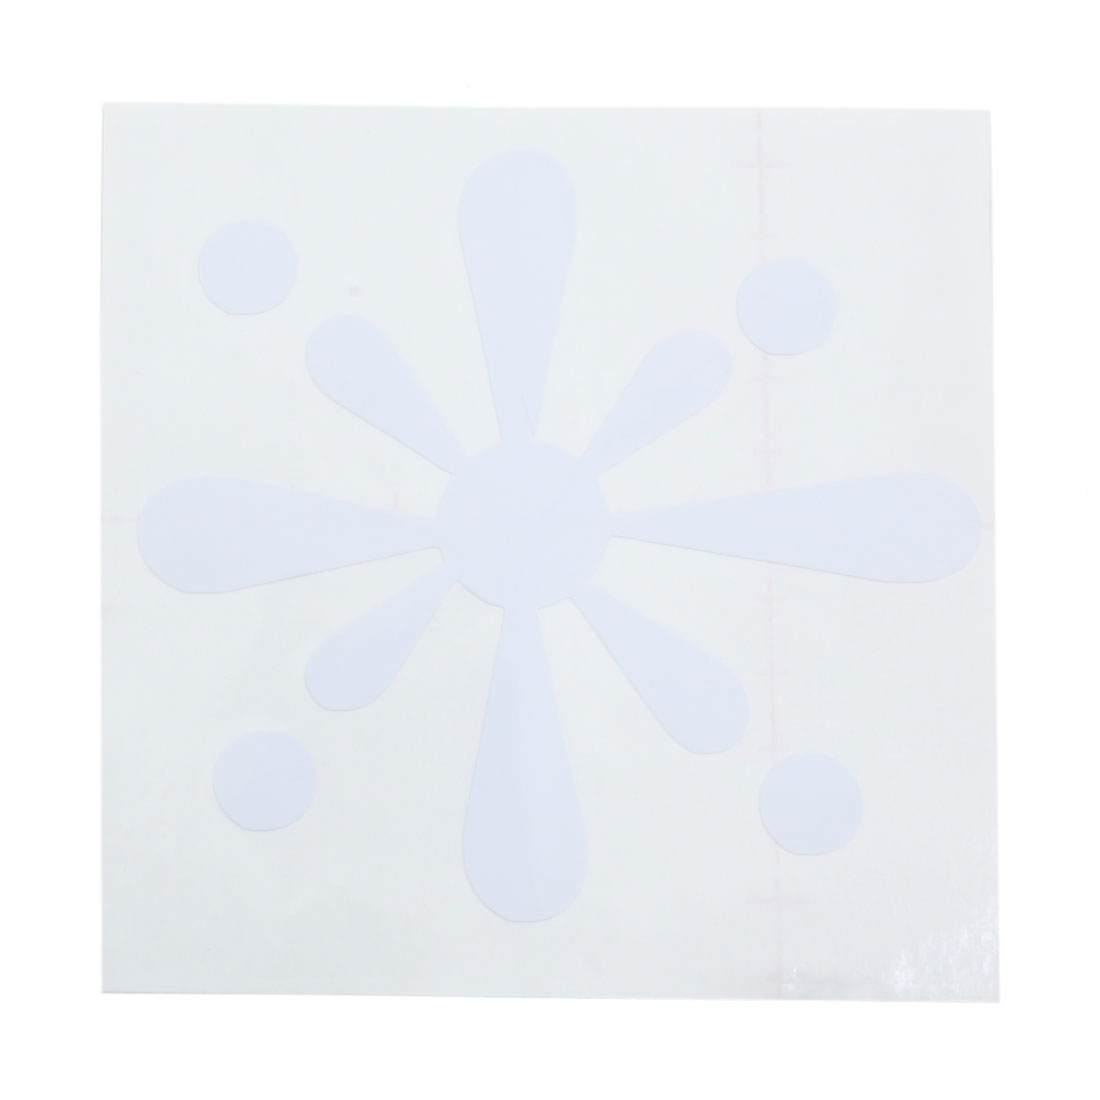 White Car Sticker Decal Decorative Accessories for Auto Vehicle Motorcycle